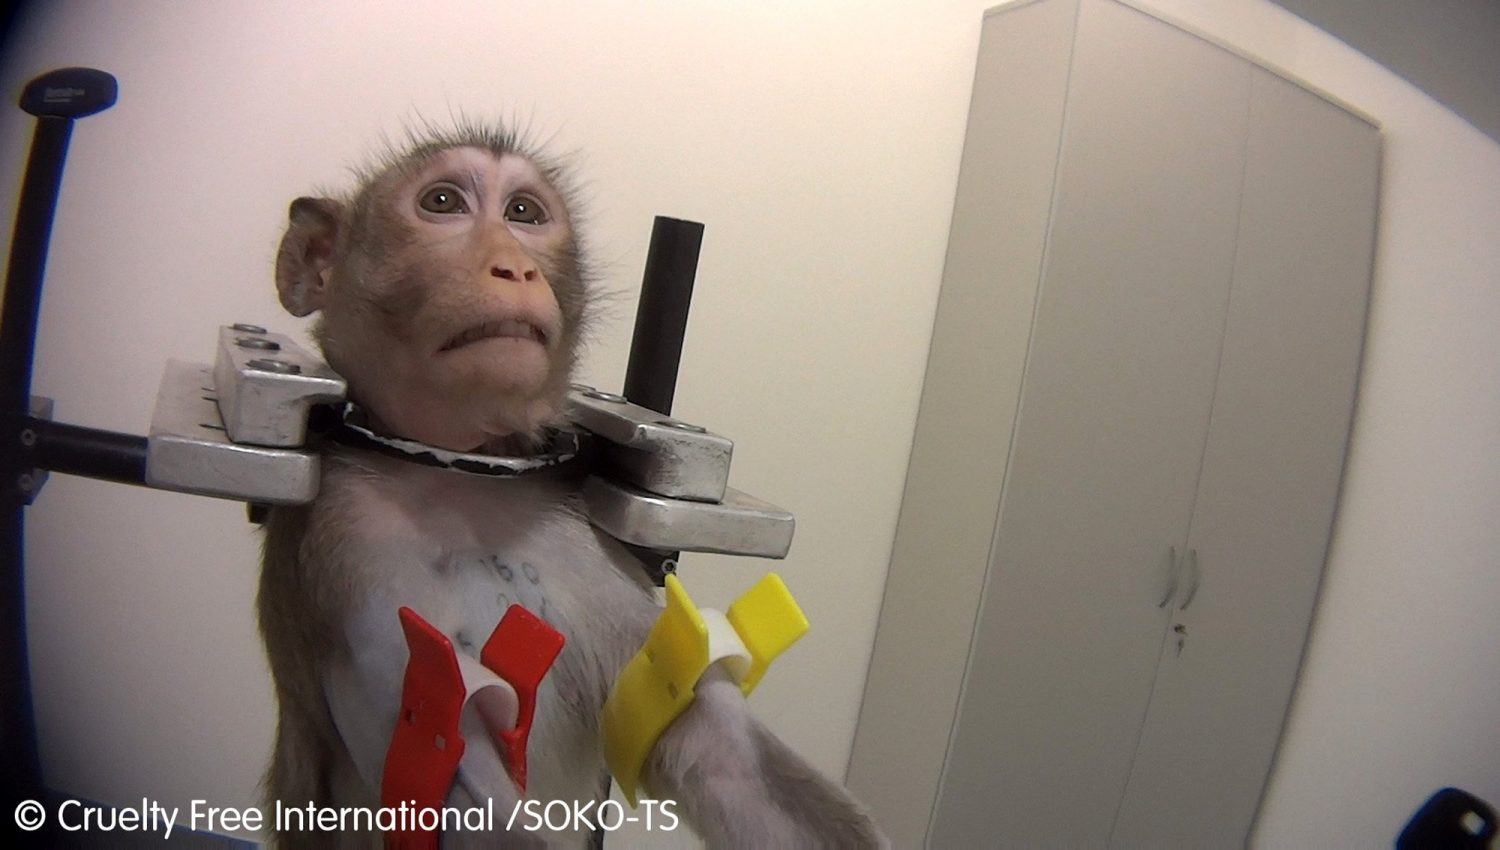 authorities raid german lab after horrifying footage showing monkeys strapped and screaming in pain during toxicity tests went viral